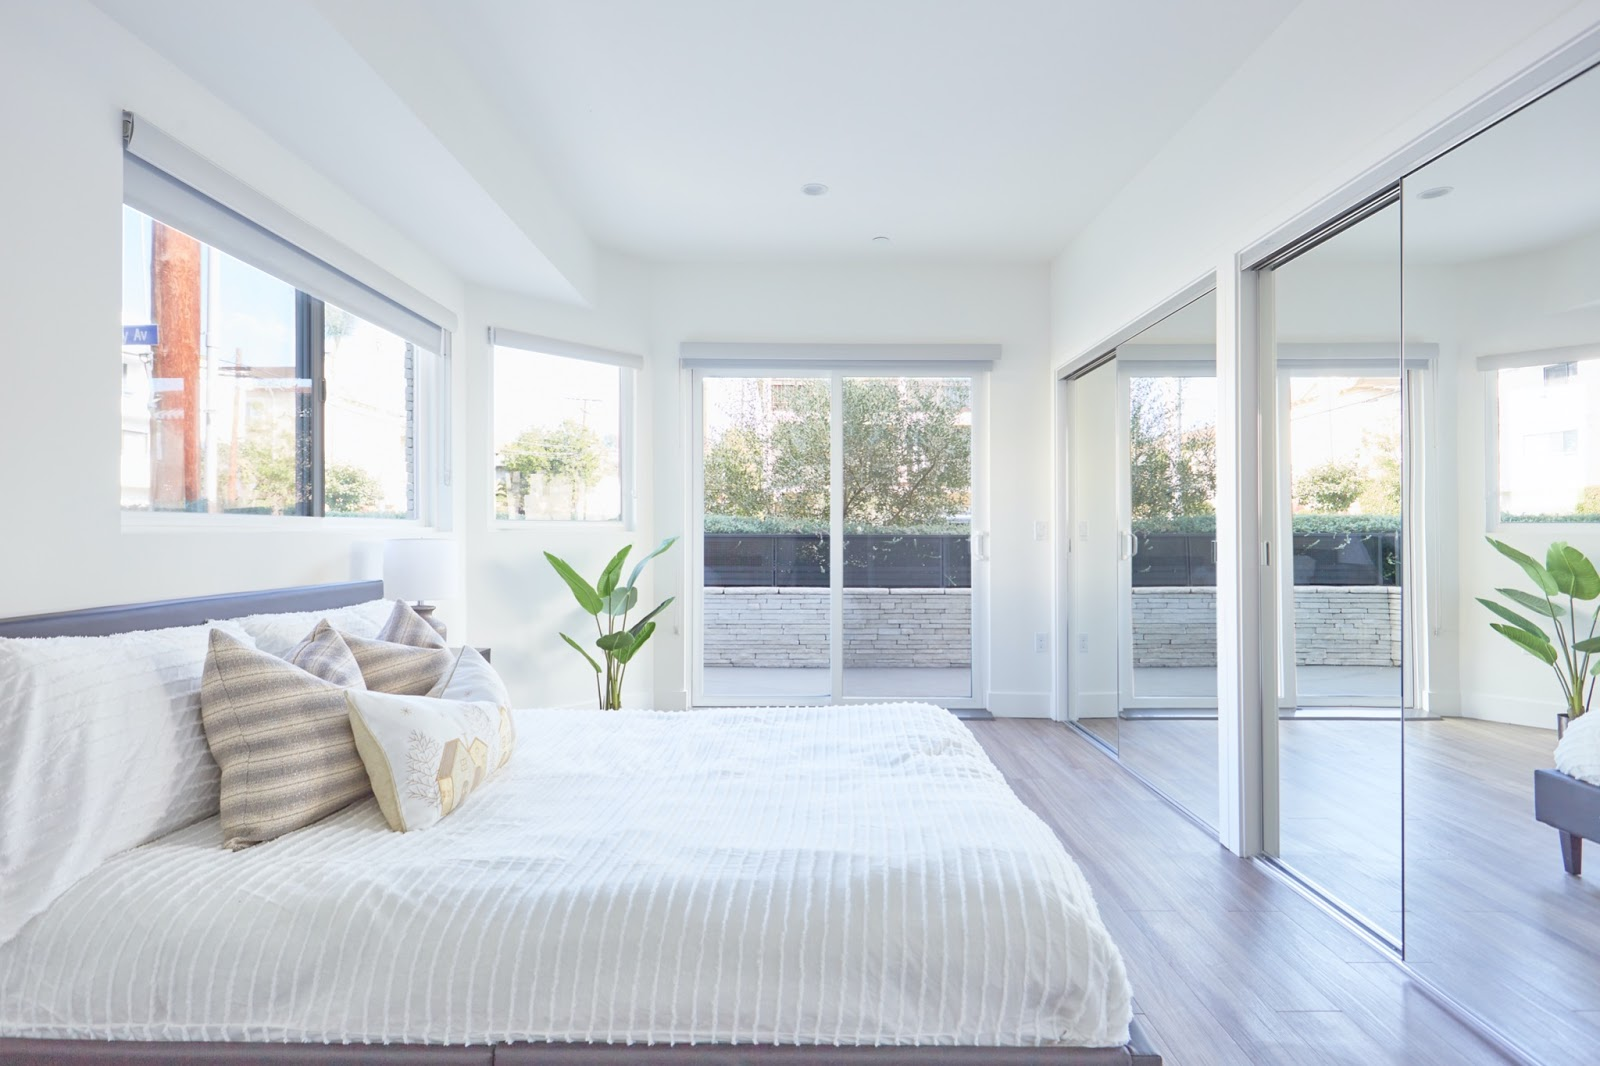 Tripalink white and bright apartment bedroom